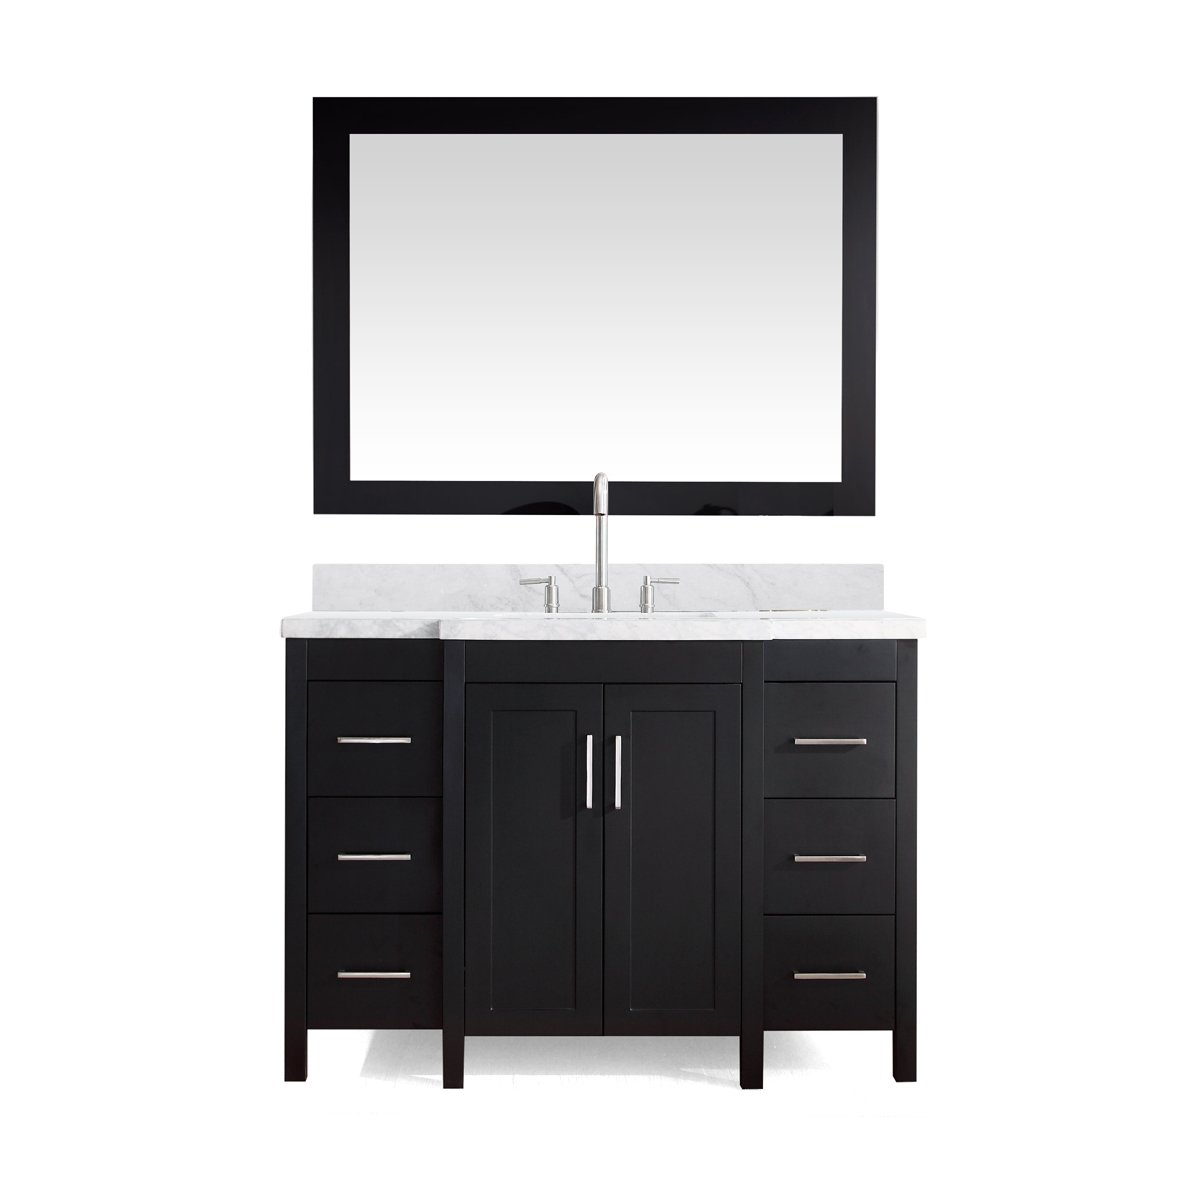 wayfair single reviews improvement design zipcode vanity bathroom home modern pdx knighten set